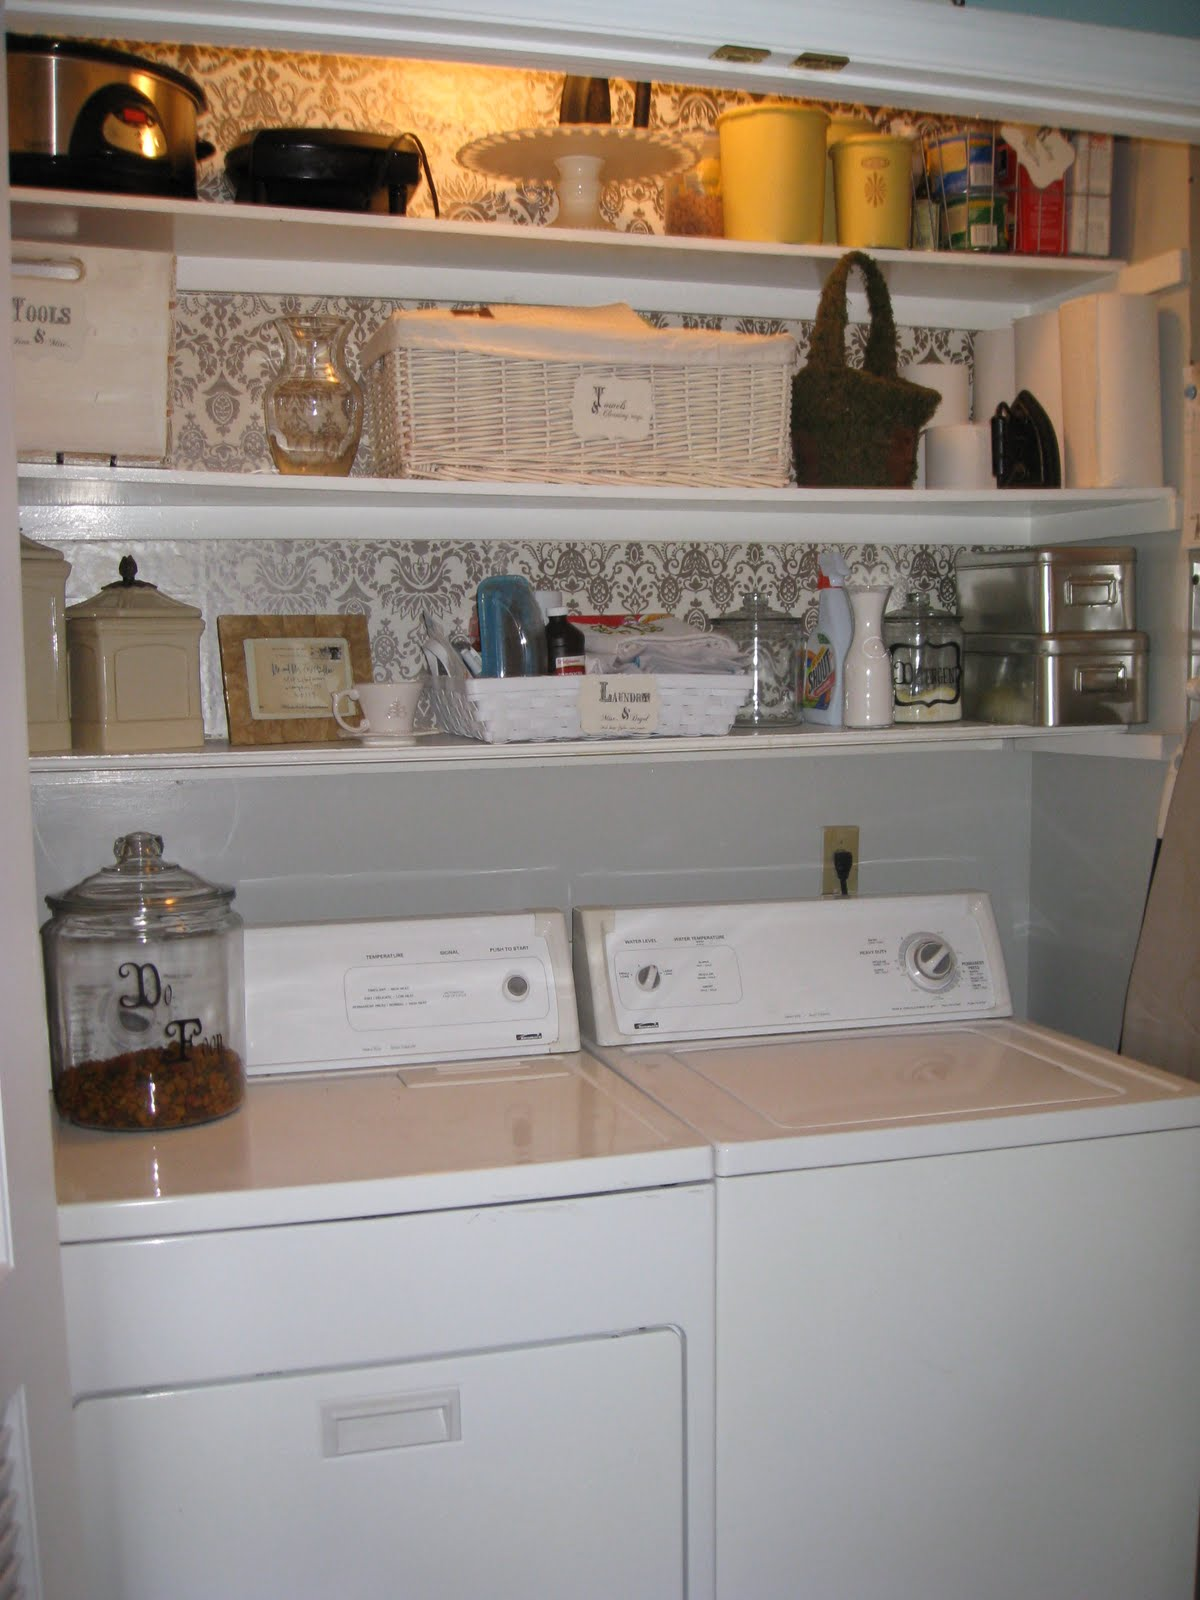 Laundry Room Design And Decorating Idea